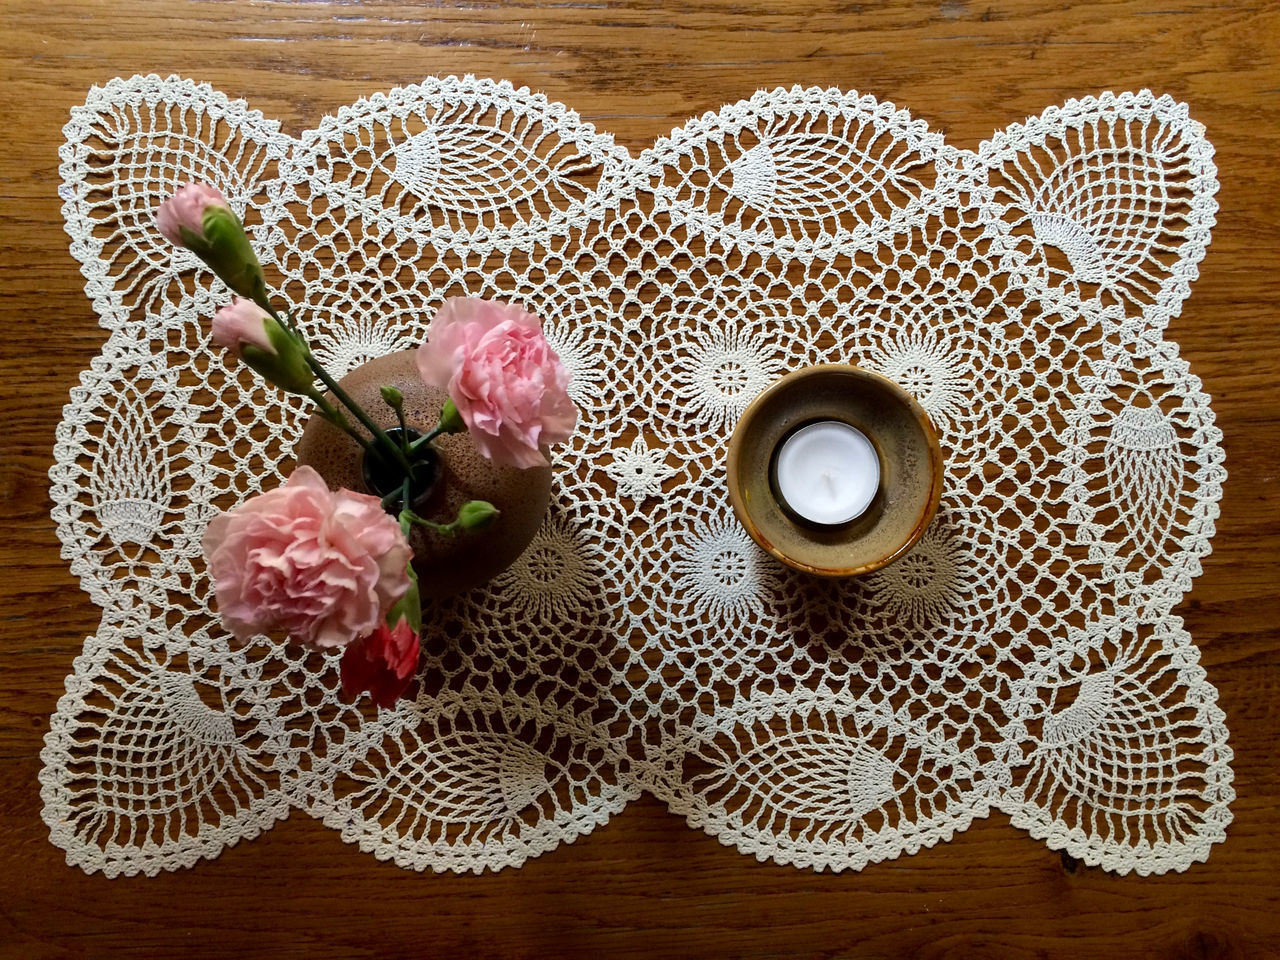 table, high angle view, flower, indoors, no people, wood - material, food and drink, freshness, close-up, fragility, day, flower head, nature